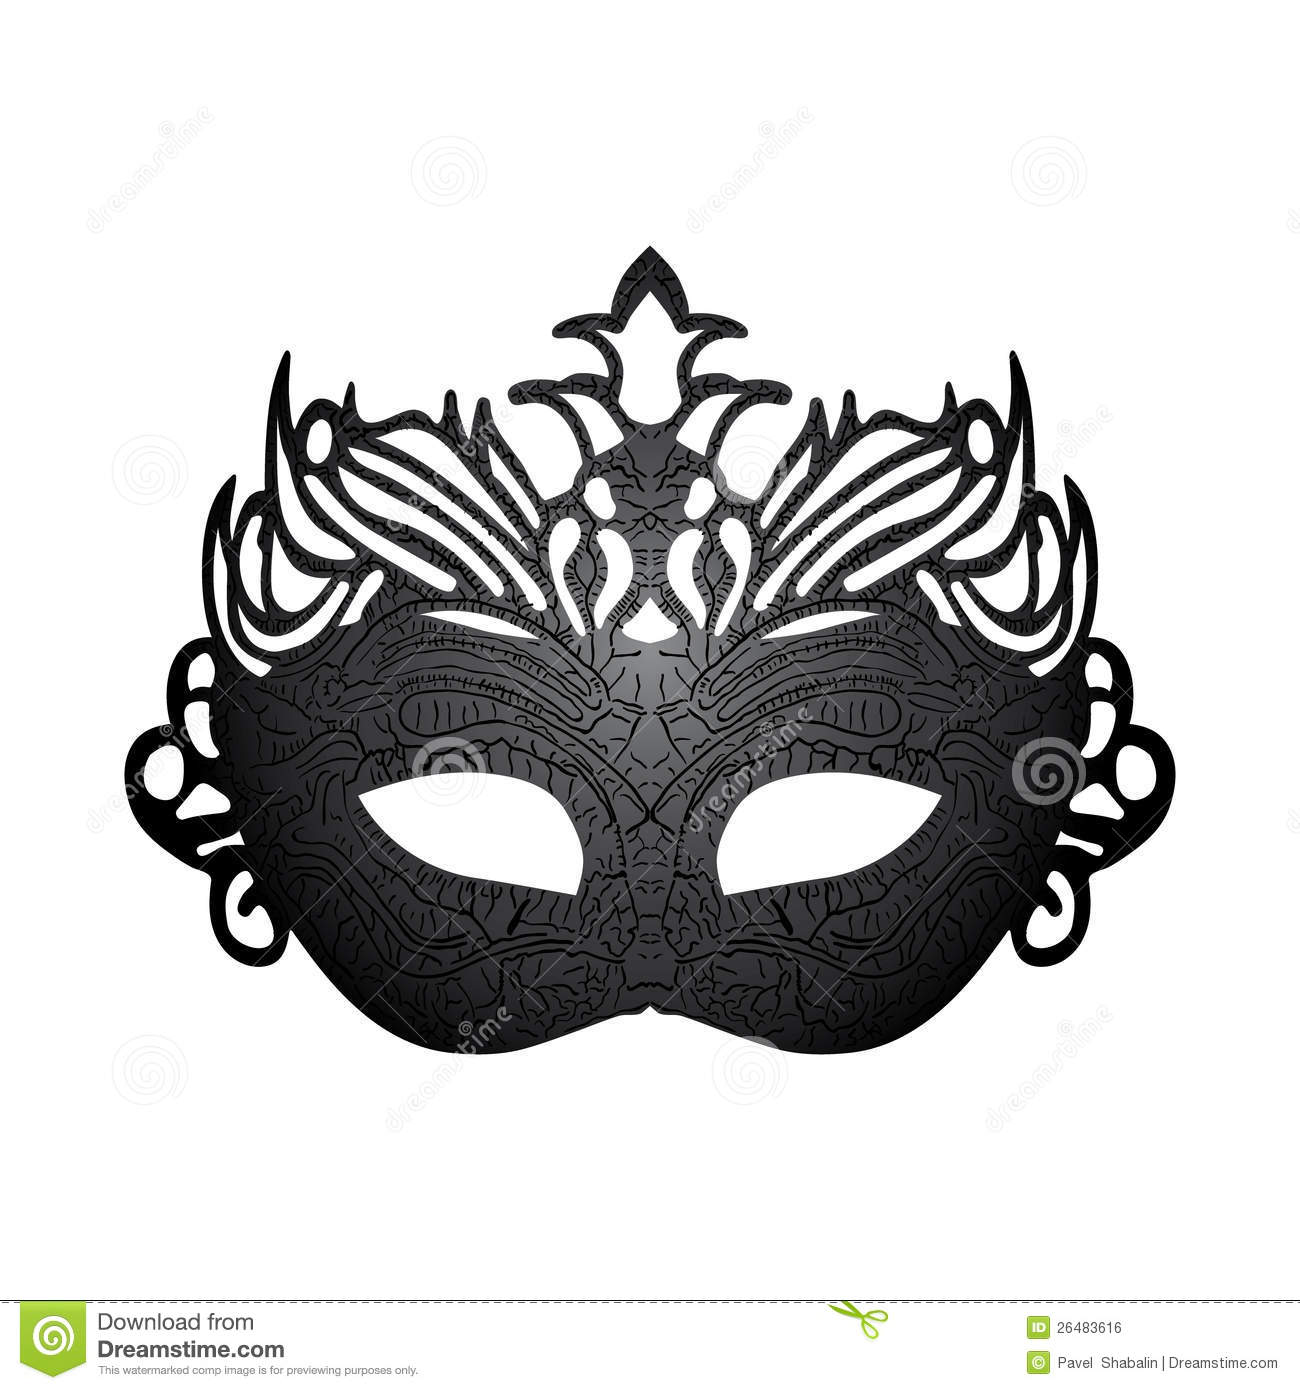 Carnival Mask Royalty Free Stock Image - Image: 26483616